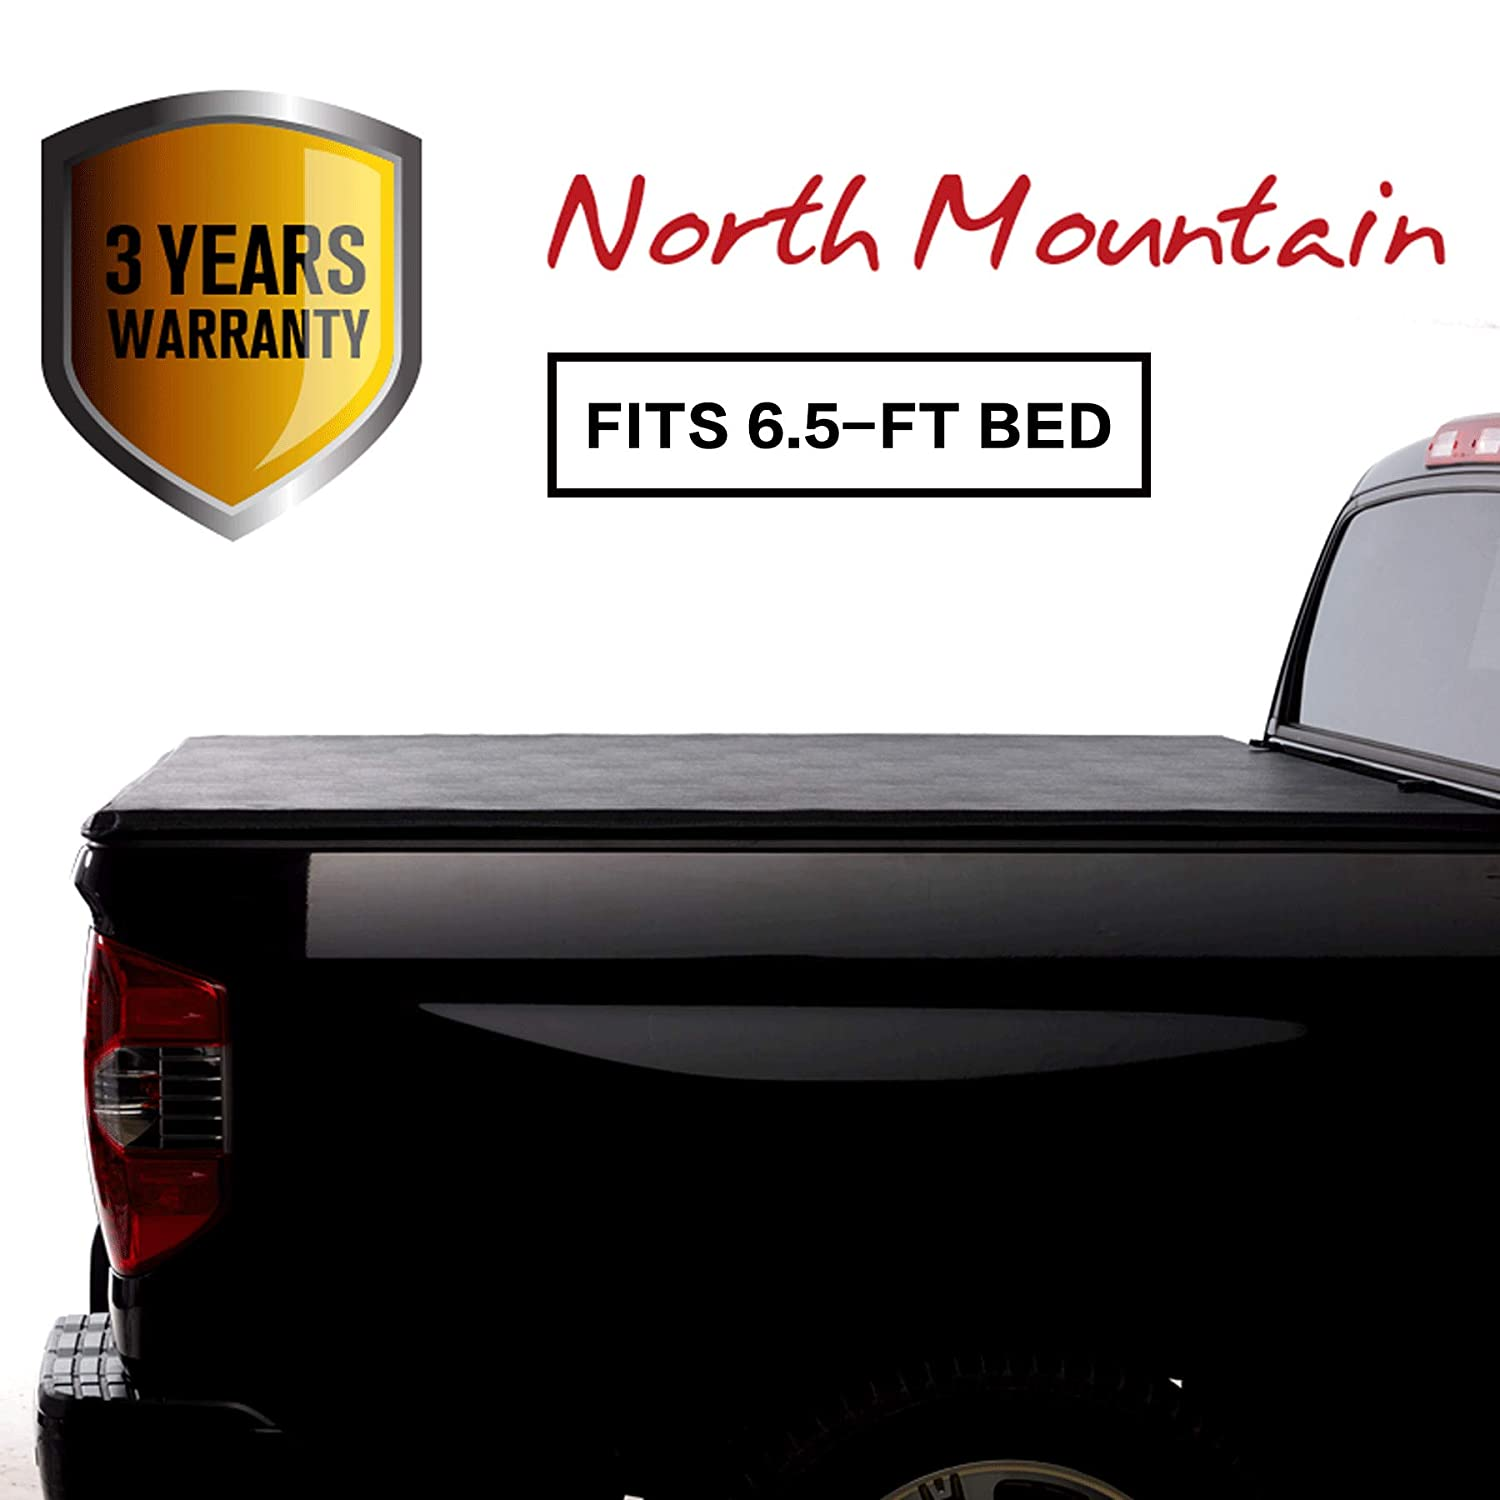 North Mountain Soft Vinyl Roll-up Tonneau Cover, Fit Chevy Silverado/GMC Sierra 14-18 1500 15-18 2500/3500 HD Pickup 6.5ft Fleetside Bed, Clamp On No Drill Top Mount Assembly w/Rails+Mounting Hardware